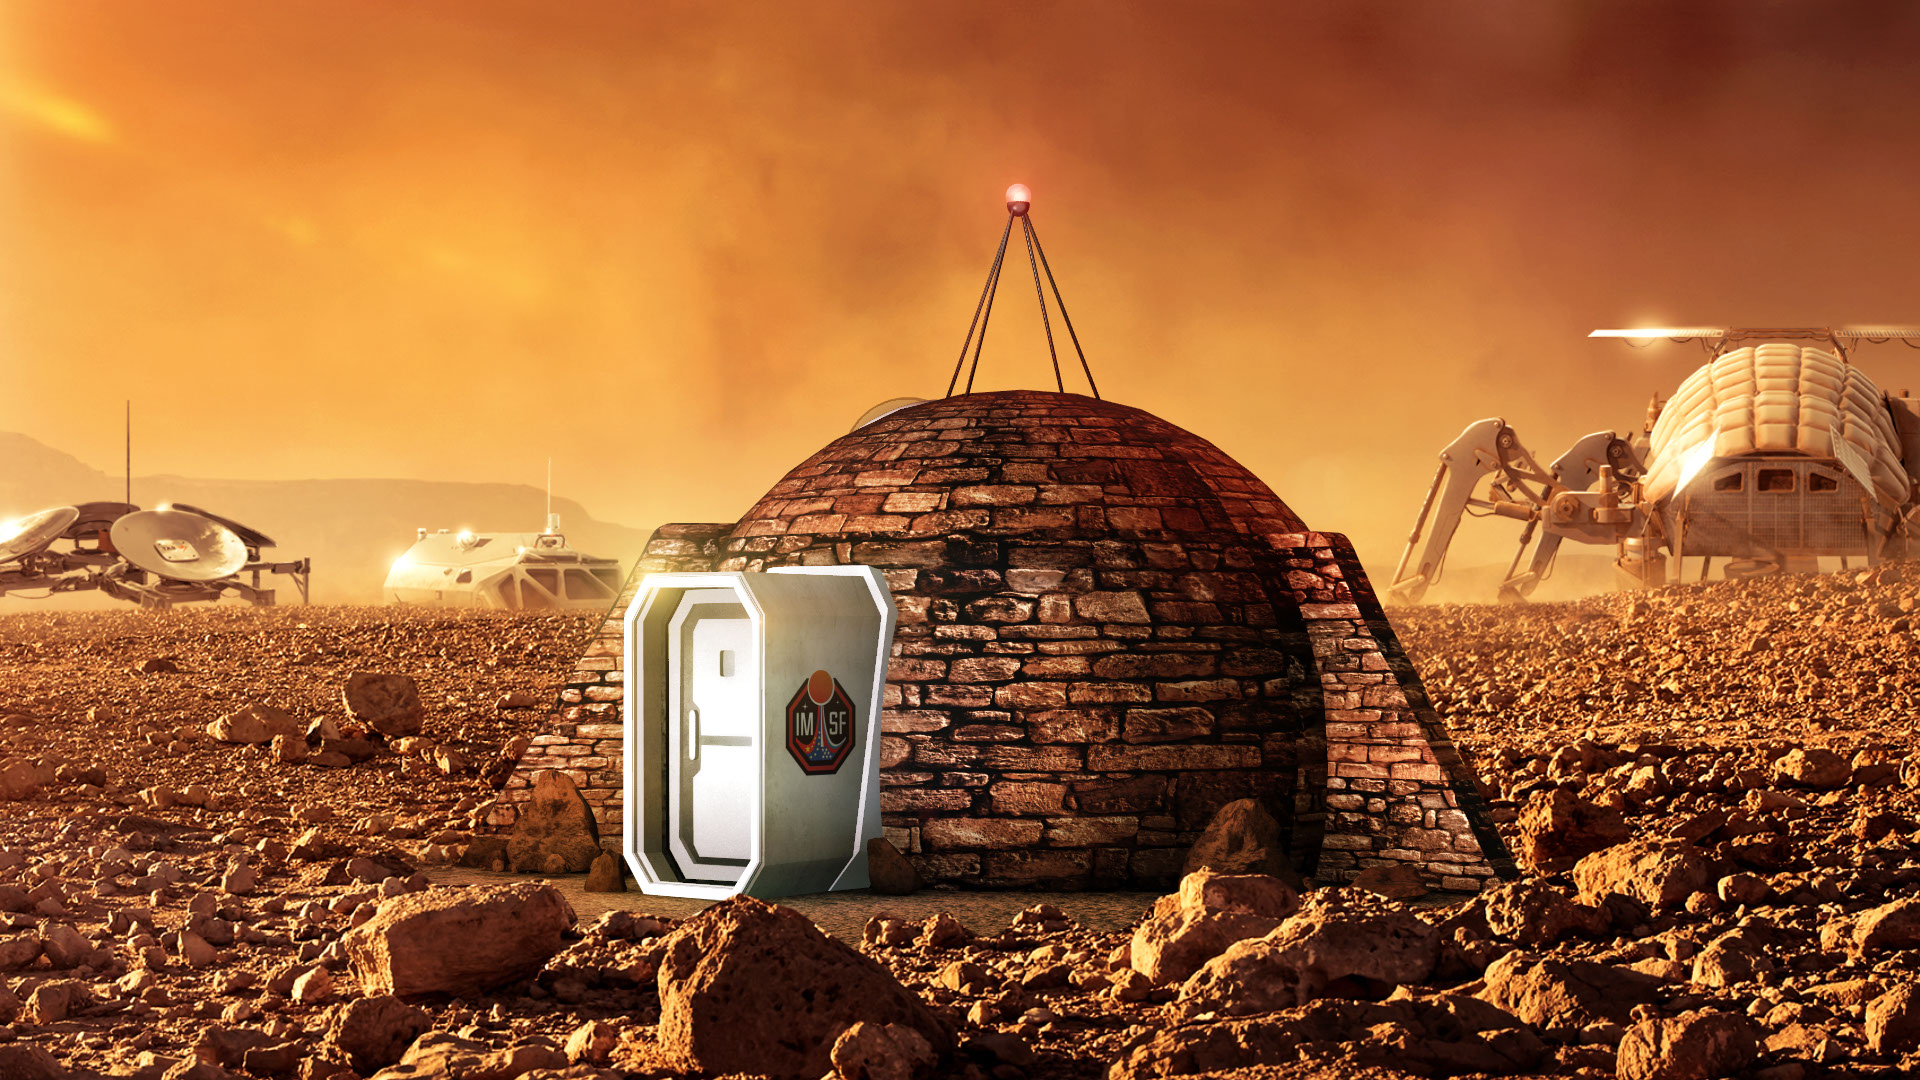 The First Mars Homes Could